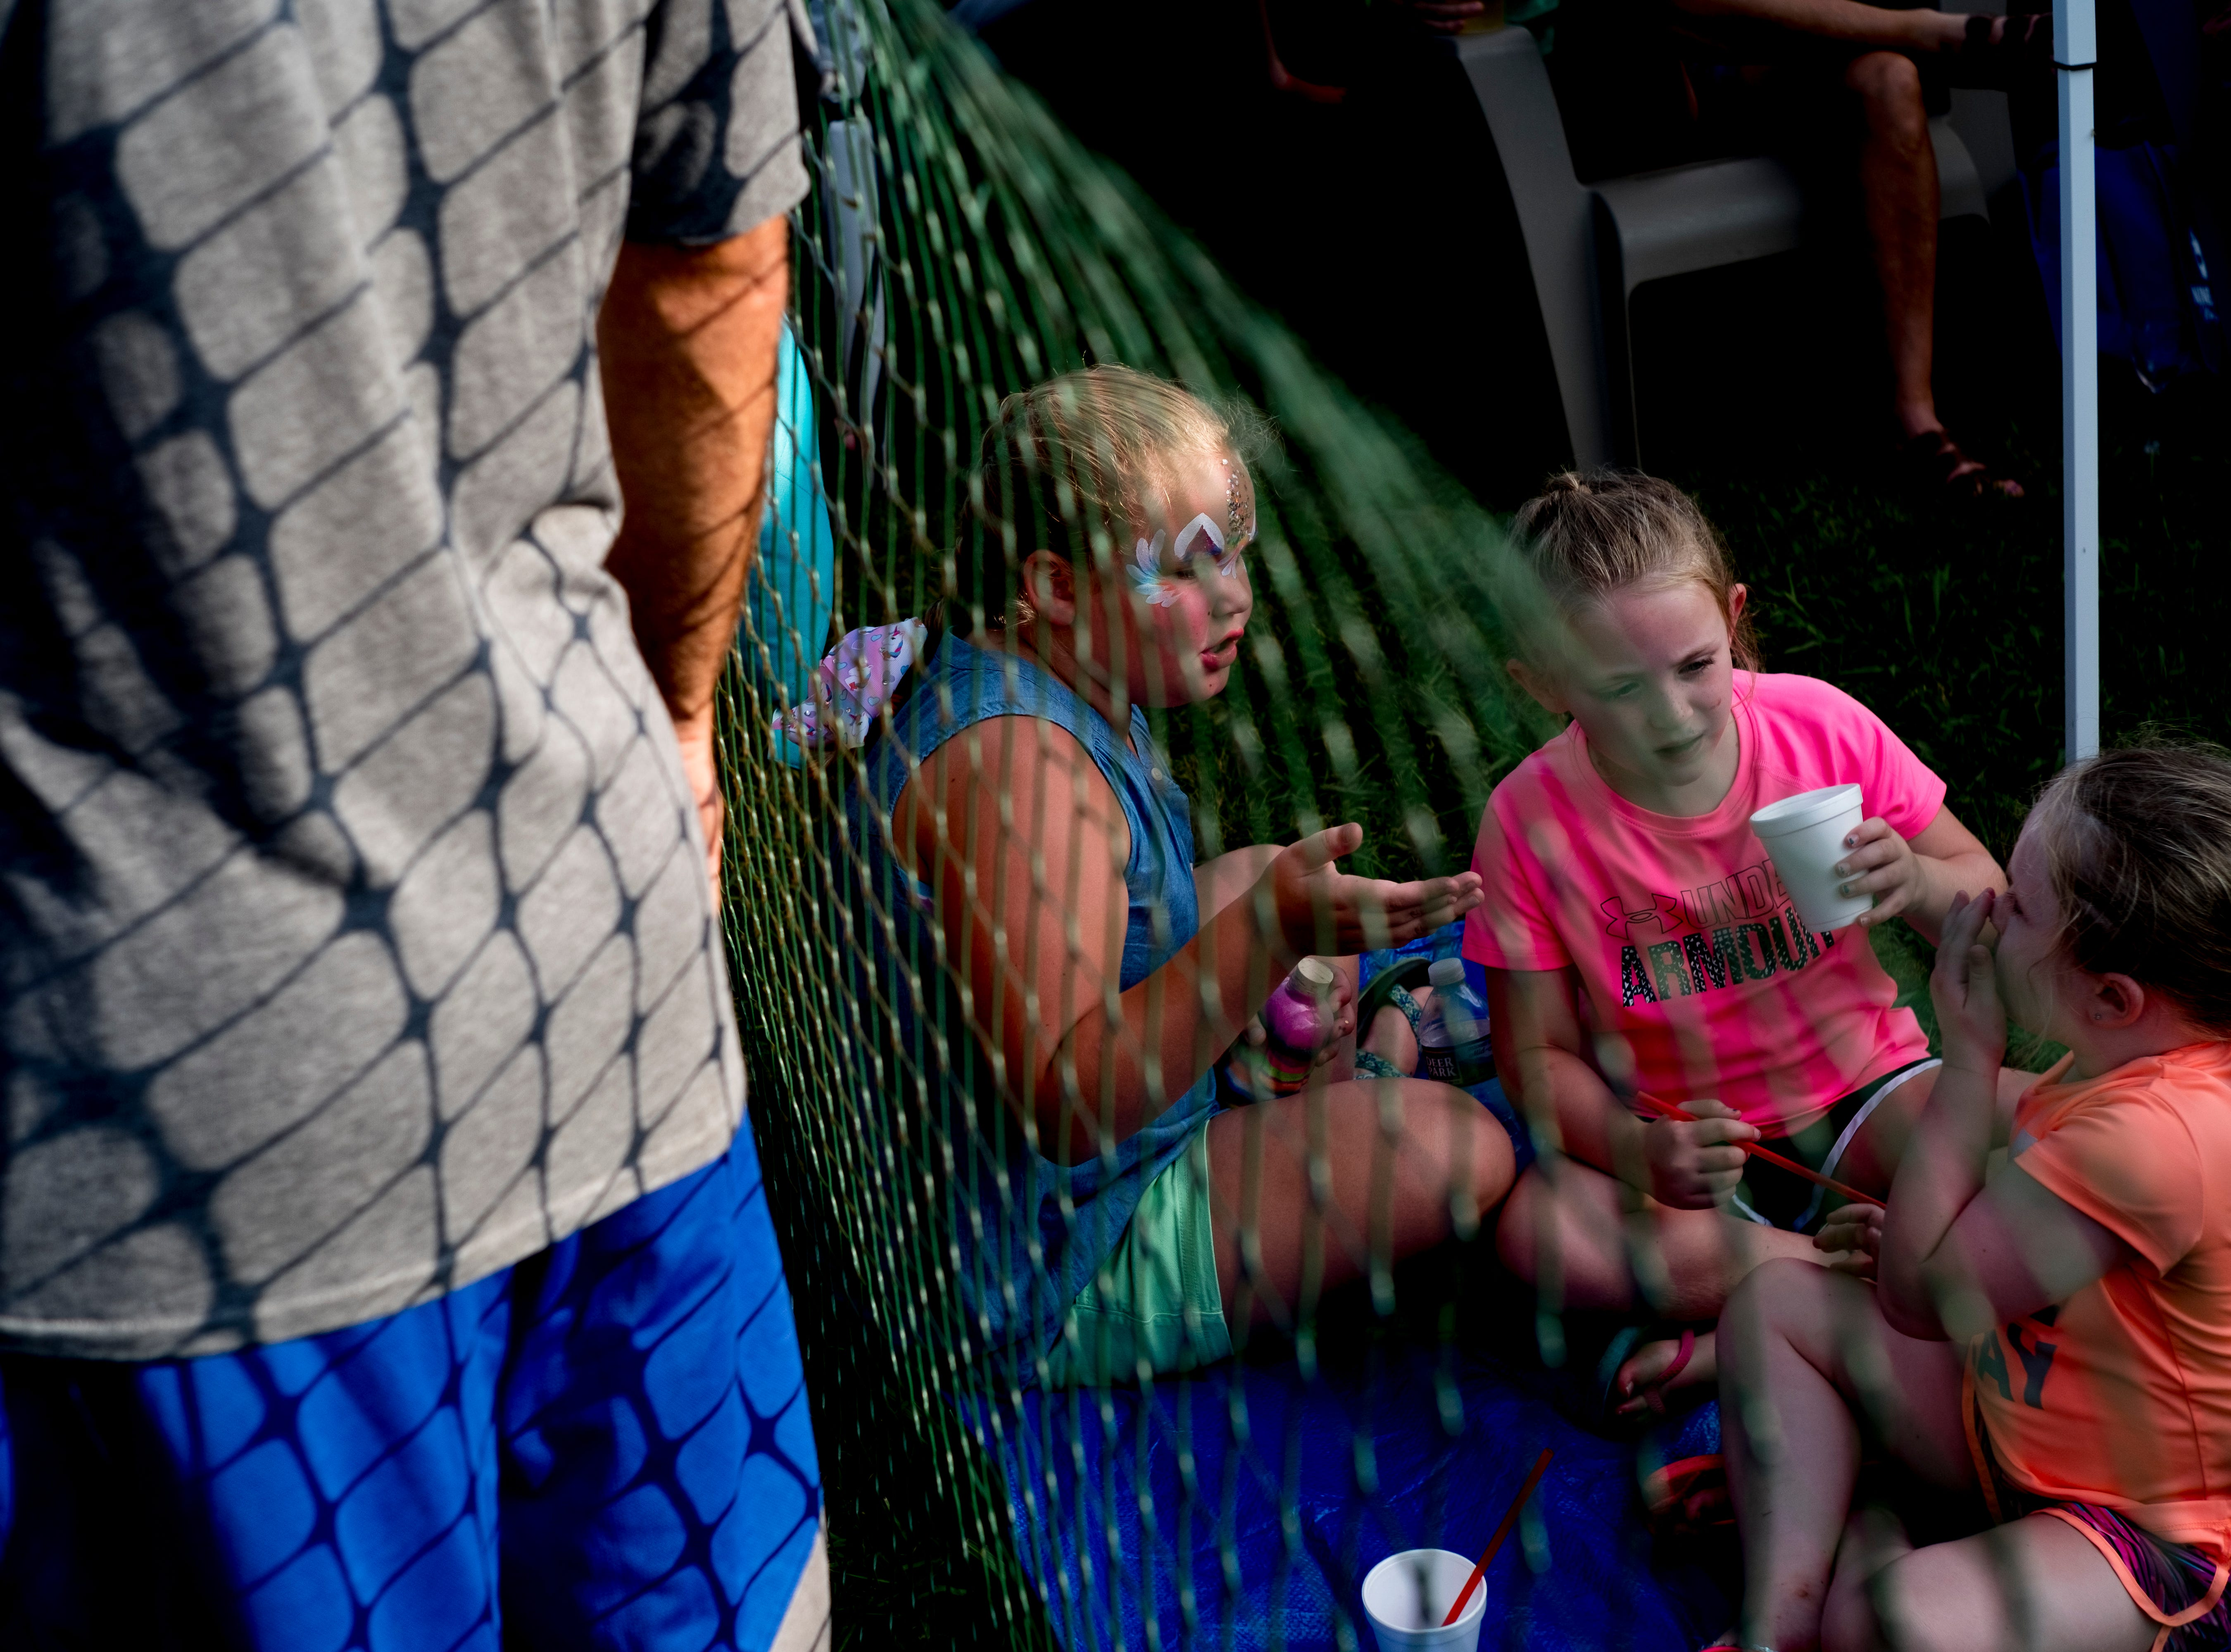 Children beat the heat at the second annual Smoky Mountain Balloon Festival in Townsend, Tennessee on Saturday, August 18, 2018. The festival featured several hot air balloons, food trucks, wine tasting and live entertainment.